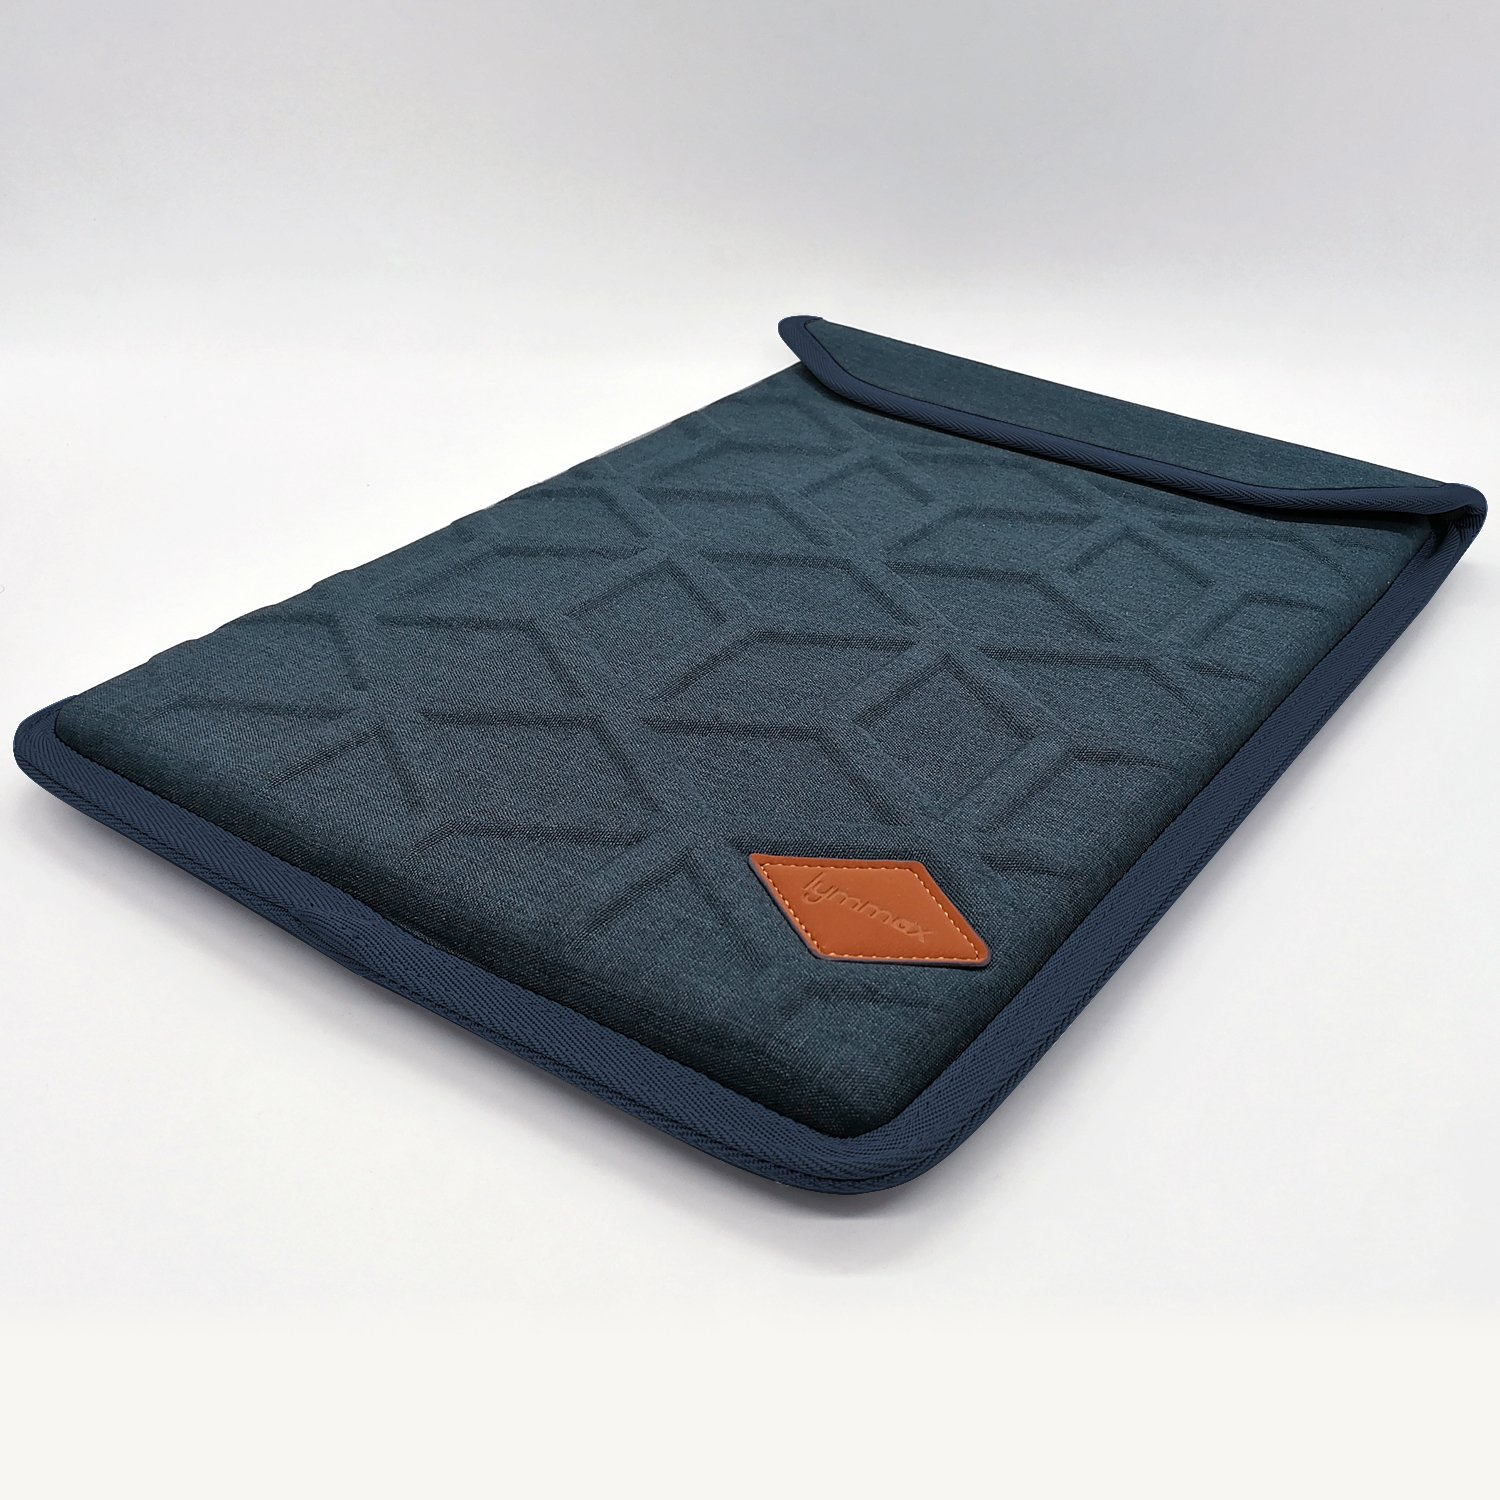 Lymmax Laptop Sleeve Case for 14 Inch HP//Dell//Lenovo//Asus//Acer Computer Carrying Case Shockproof Hardshell